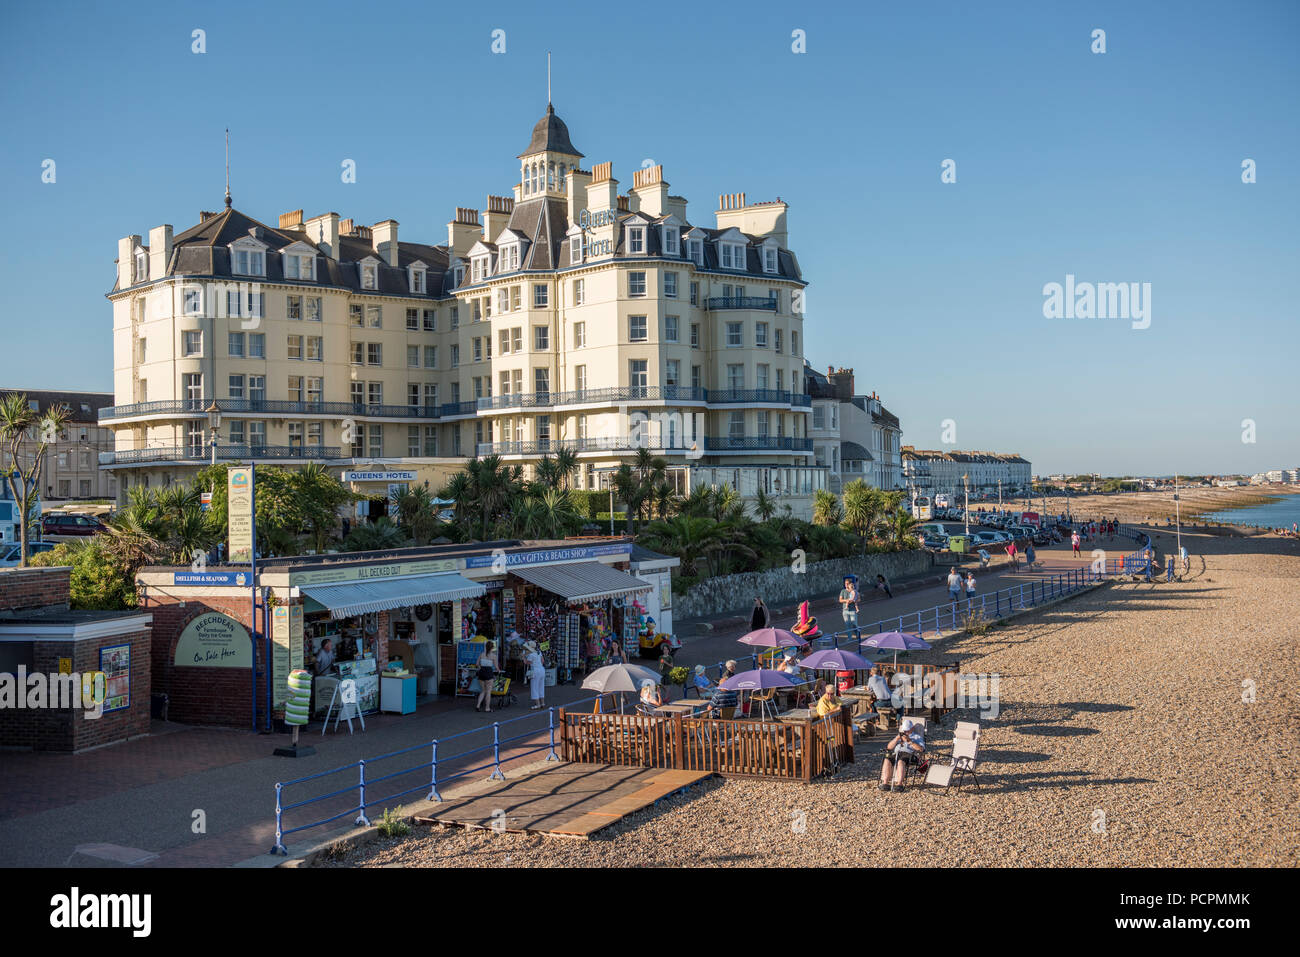 The Queens Hotel on the seafront at Eastbourne, East Sussex